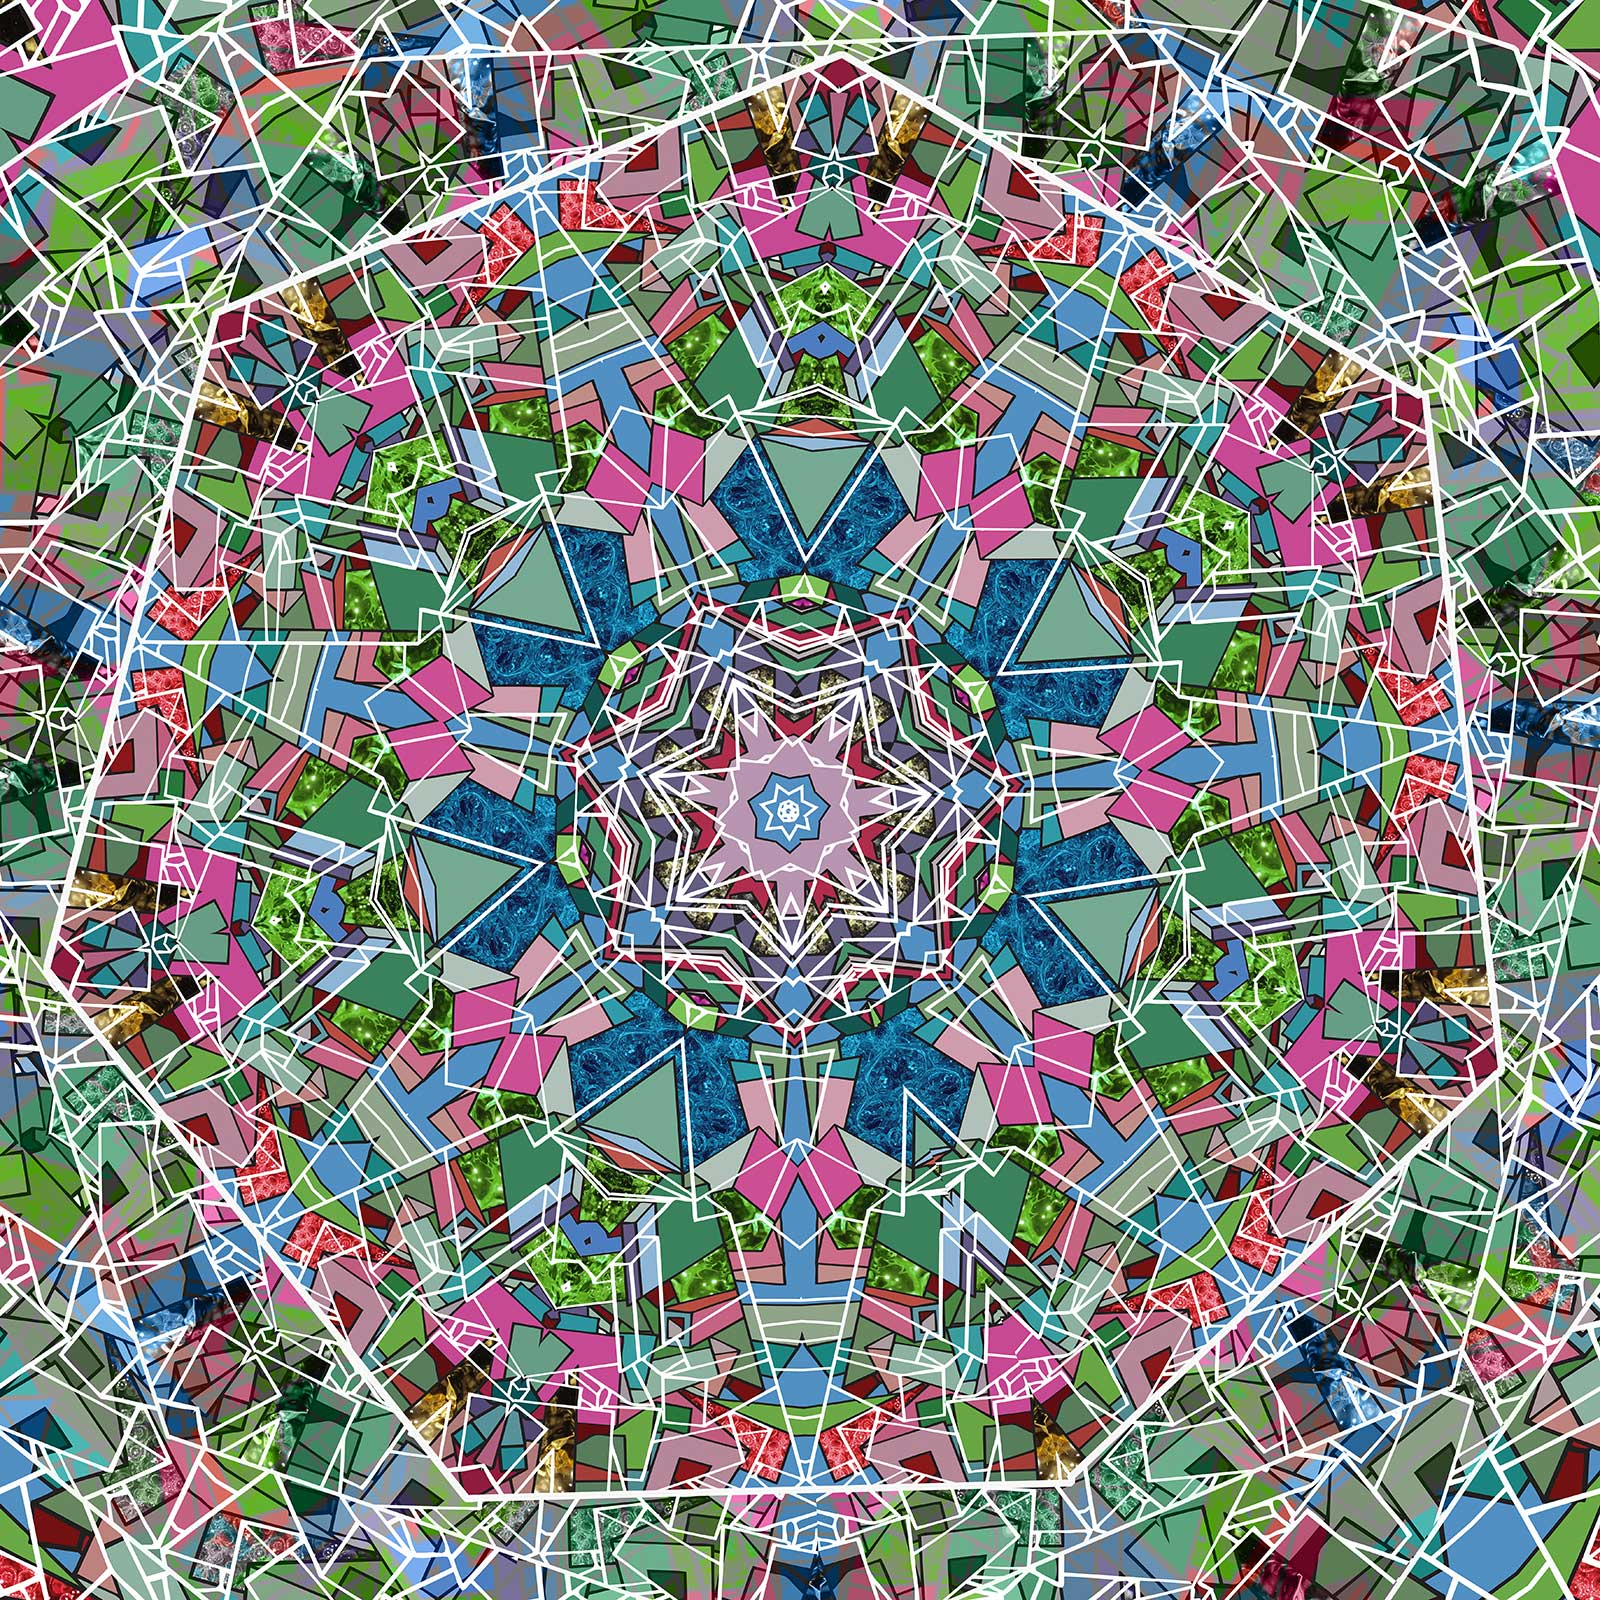 Transient Mandala   © Dex Hannon - All rights reserved